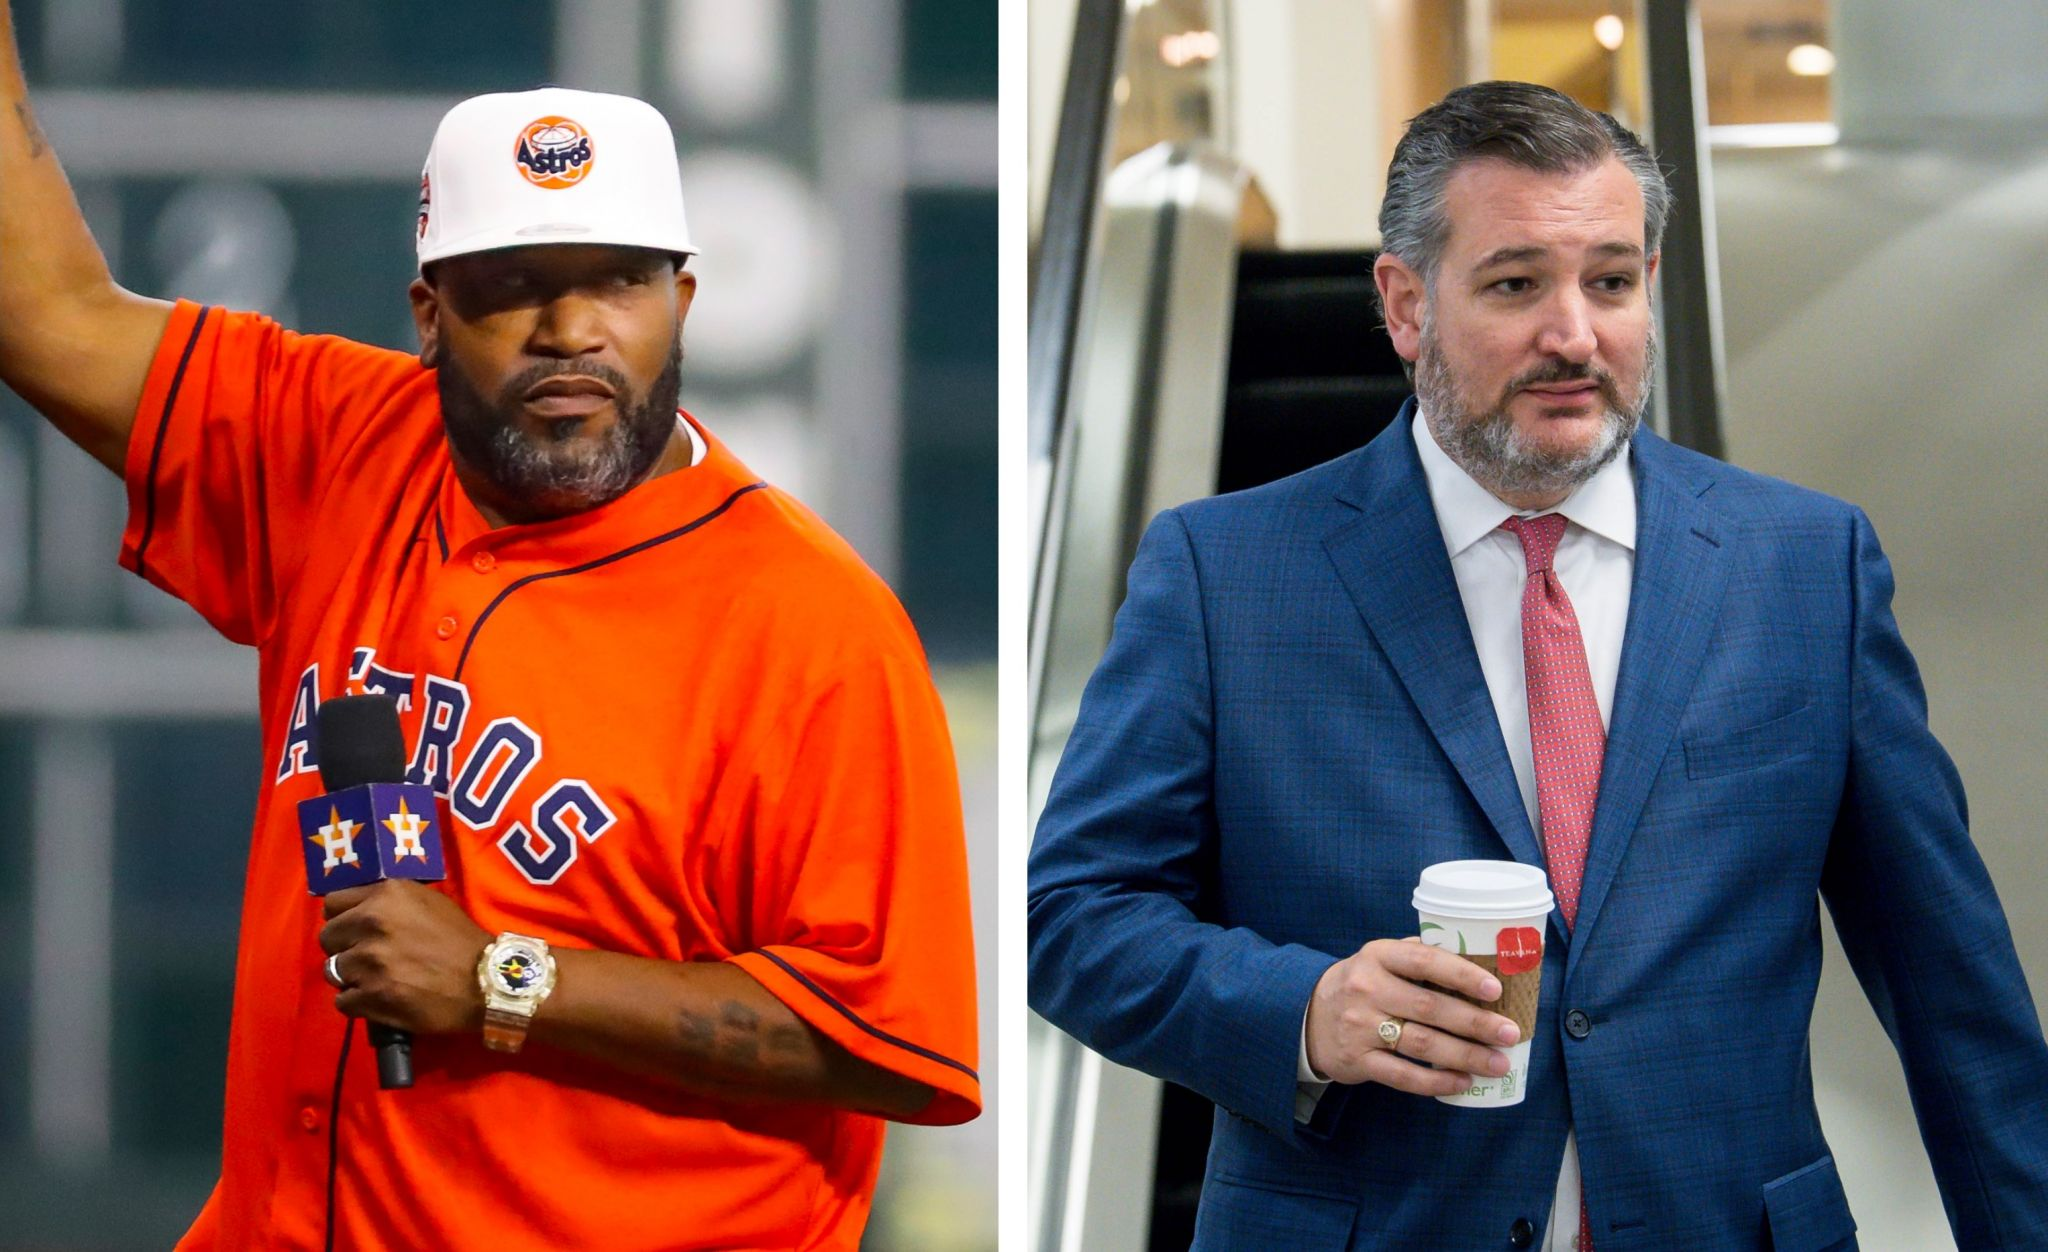 Bun B heckles Ted Cruz at Astros game: 'Where you going? To Cancun?' - Chron